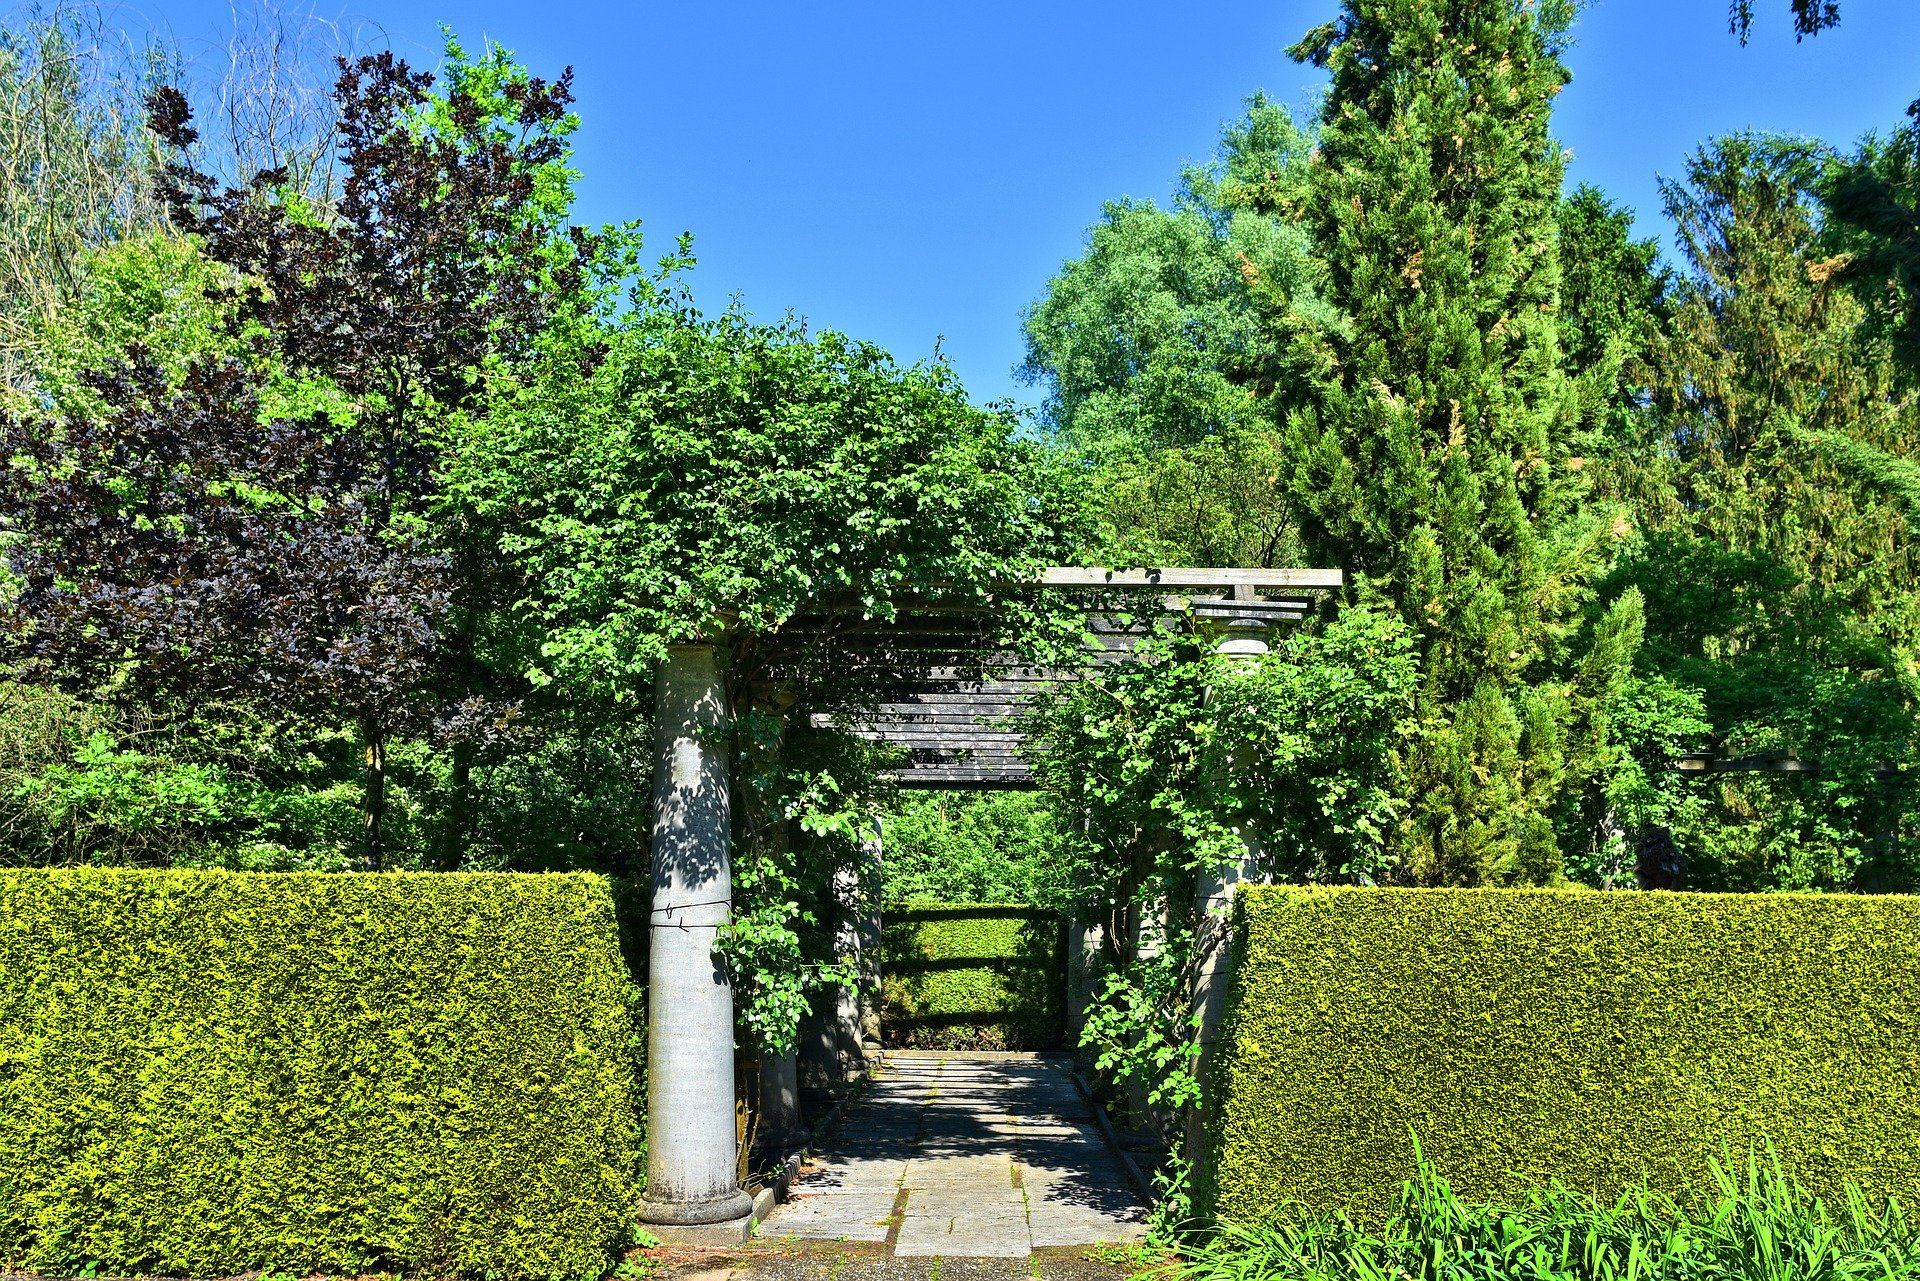 Pictured - A trimmed hedge   Source: Pixabay